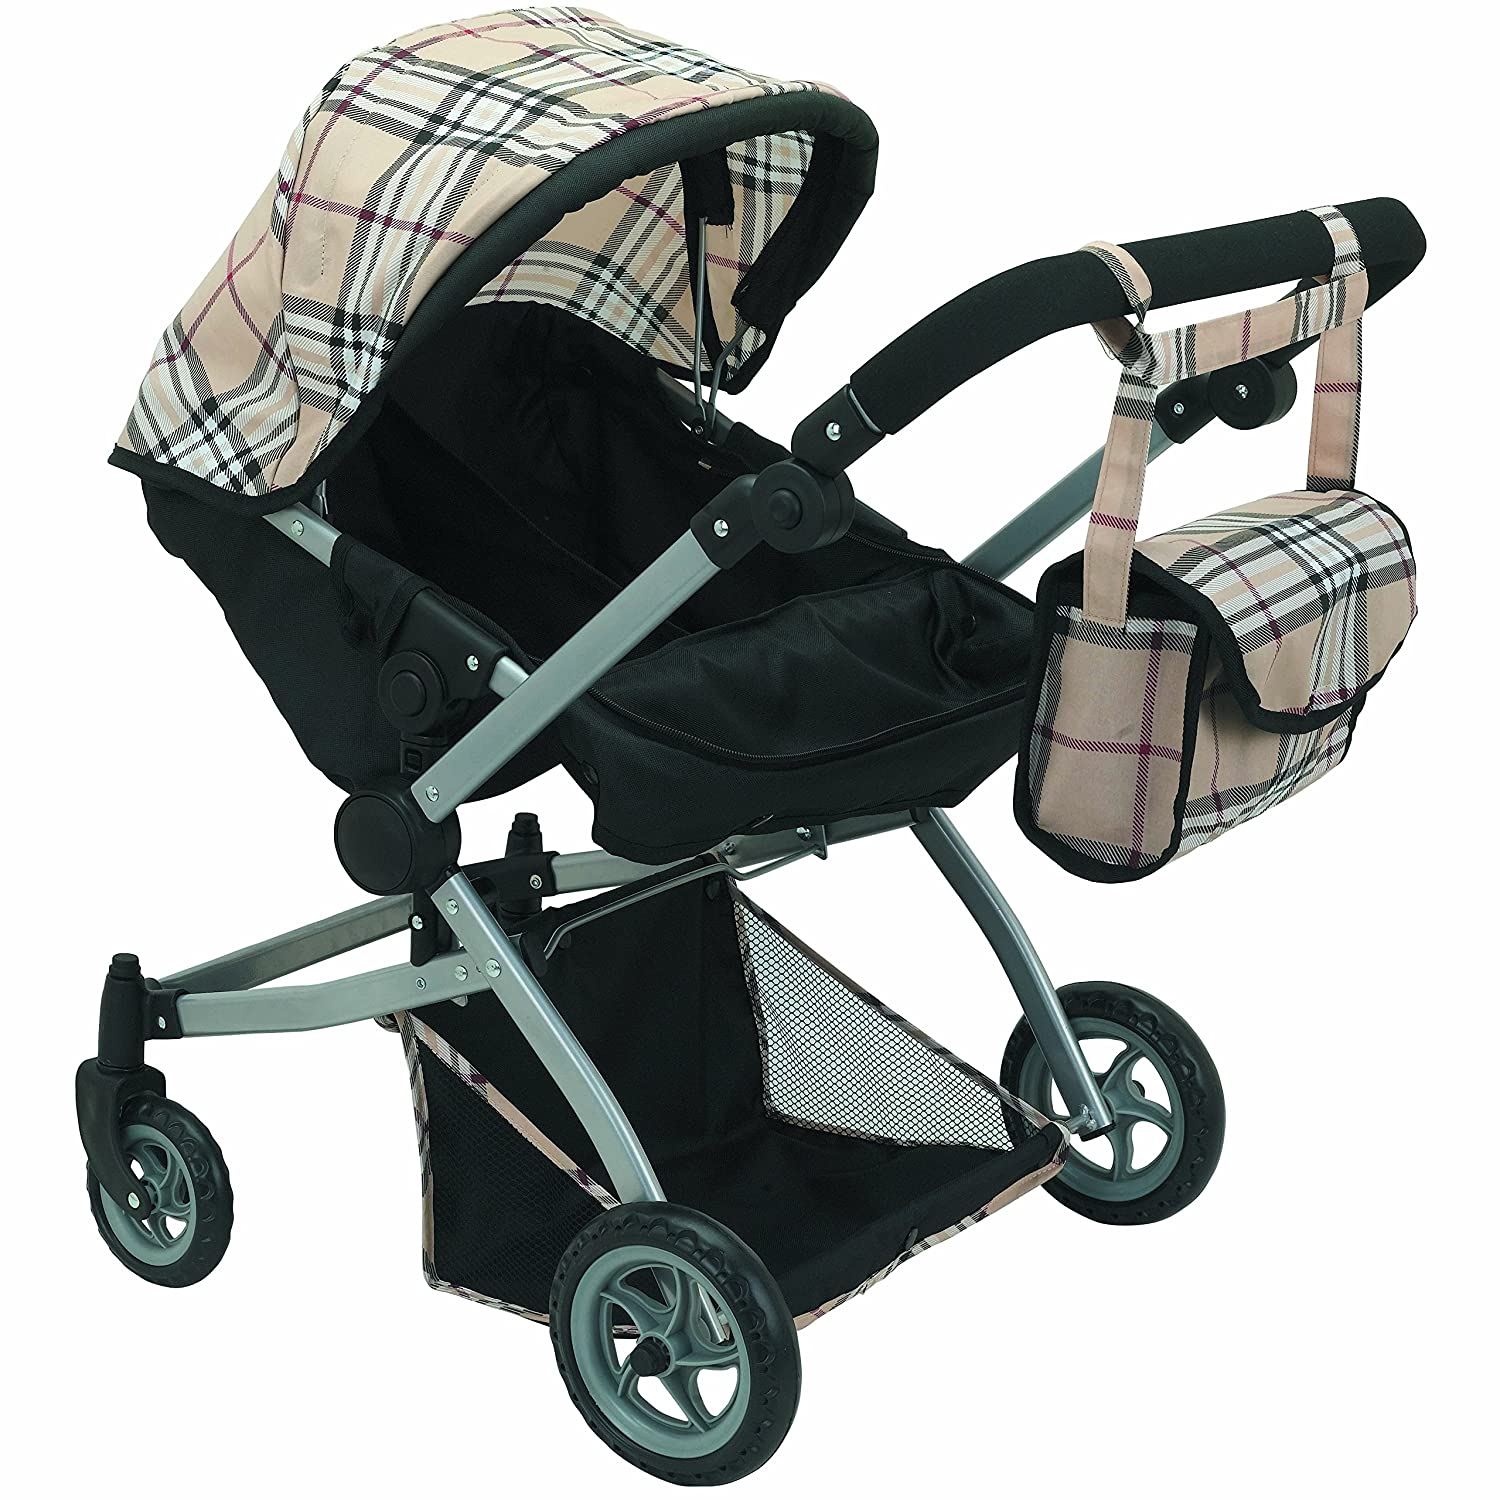 Adjustable Handle Babyboo Deluxe Twin Doll Pram Foldable Doll Stroller with Swiveling Wheels 9651A Basket Convertible Seat,and Free Carriage Bag Beige /& Black Plaid Multi Function